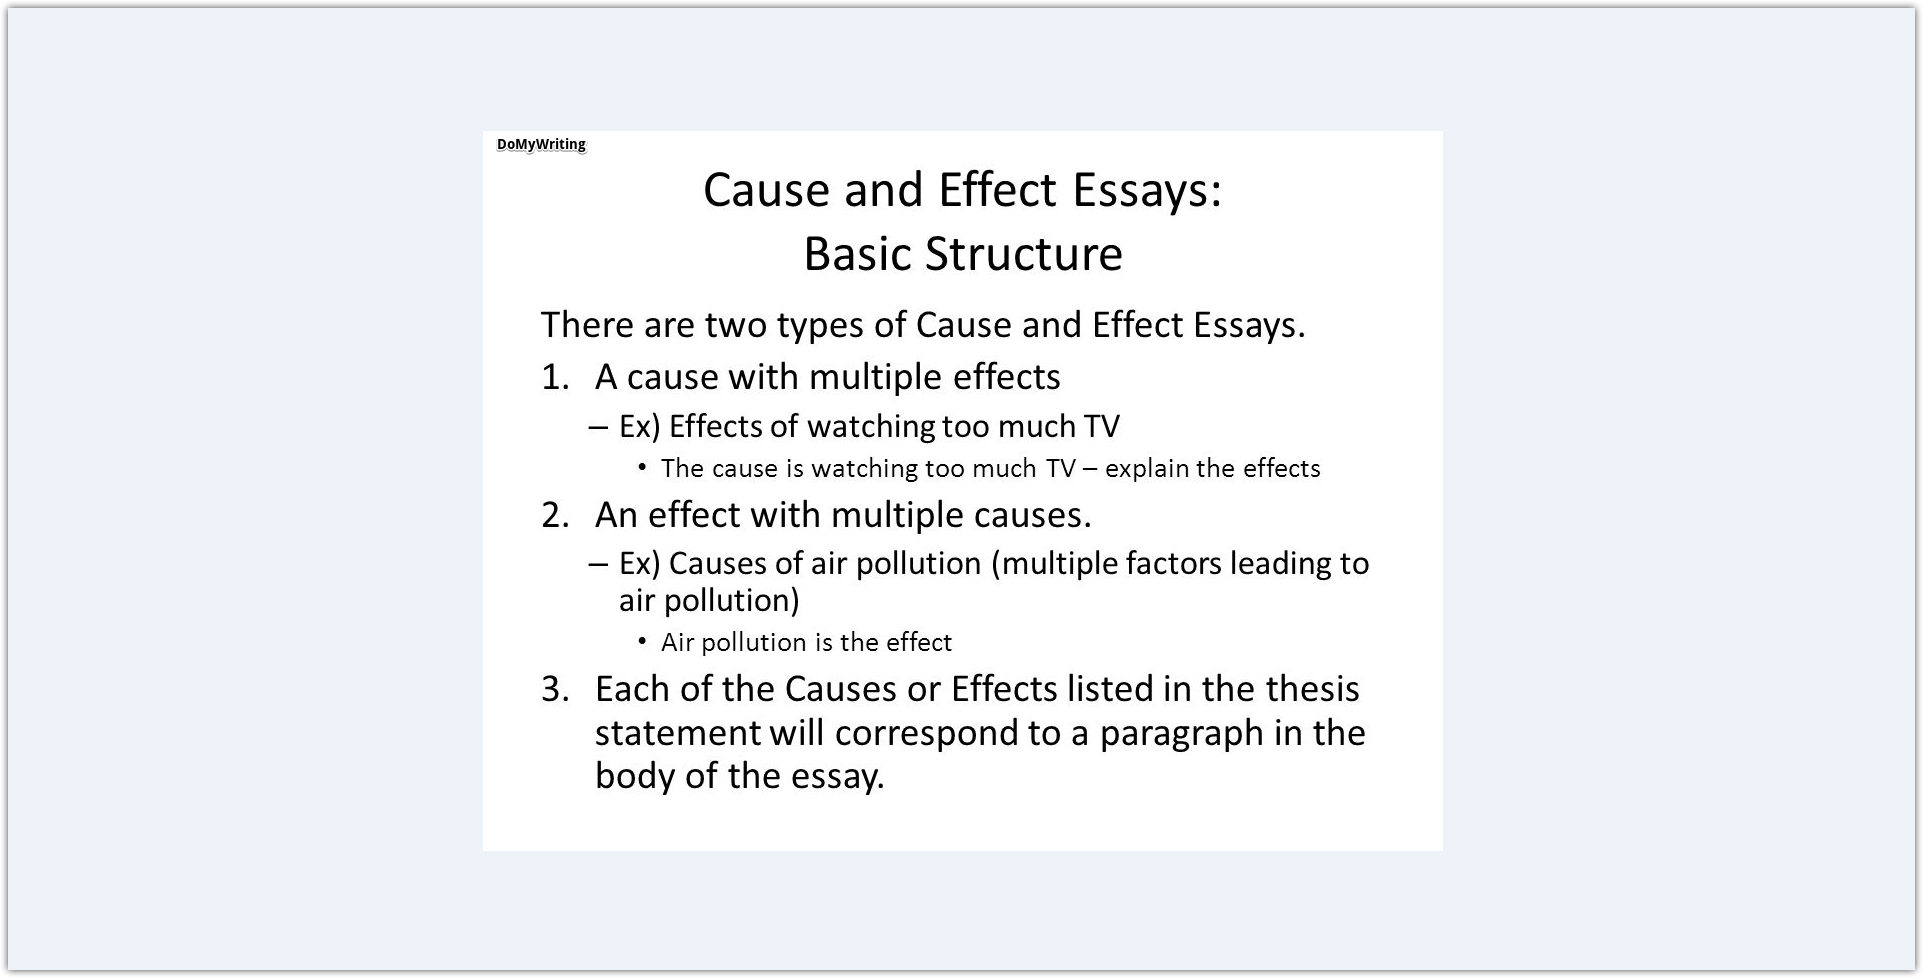 013 Cause And Effect Essay Topics Structure Dreaded Ielts On Smoking Weed Thesis Generator Full